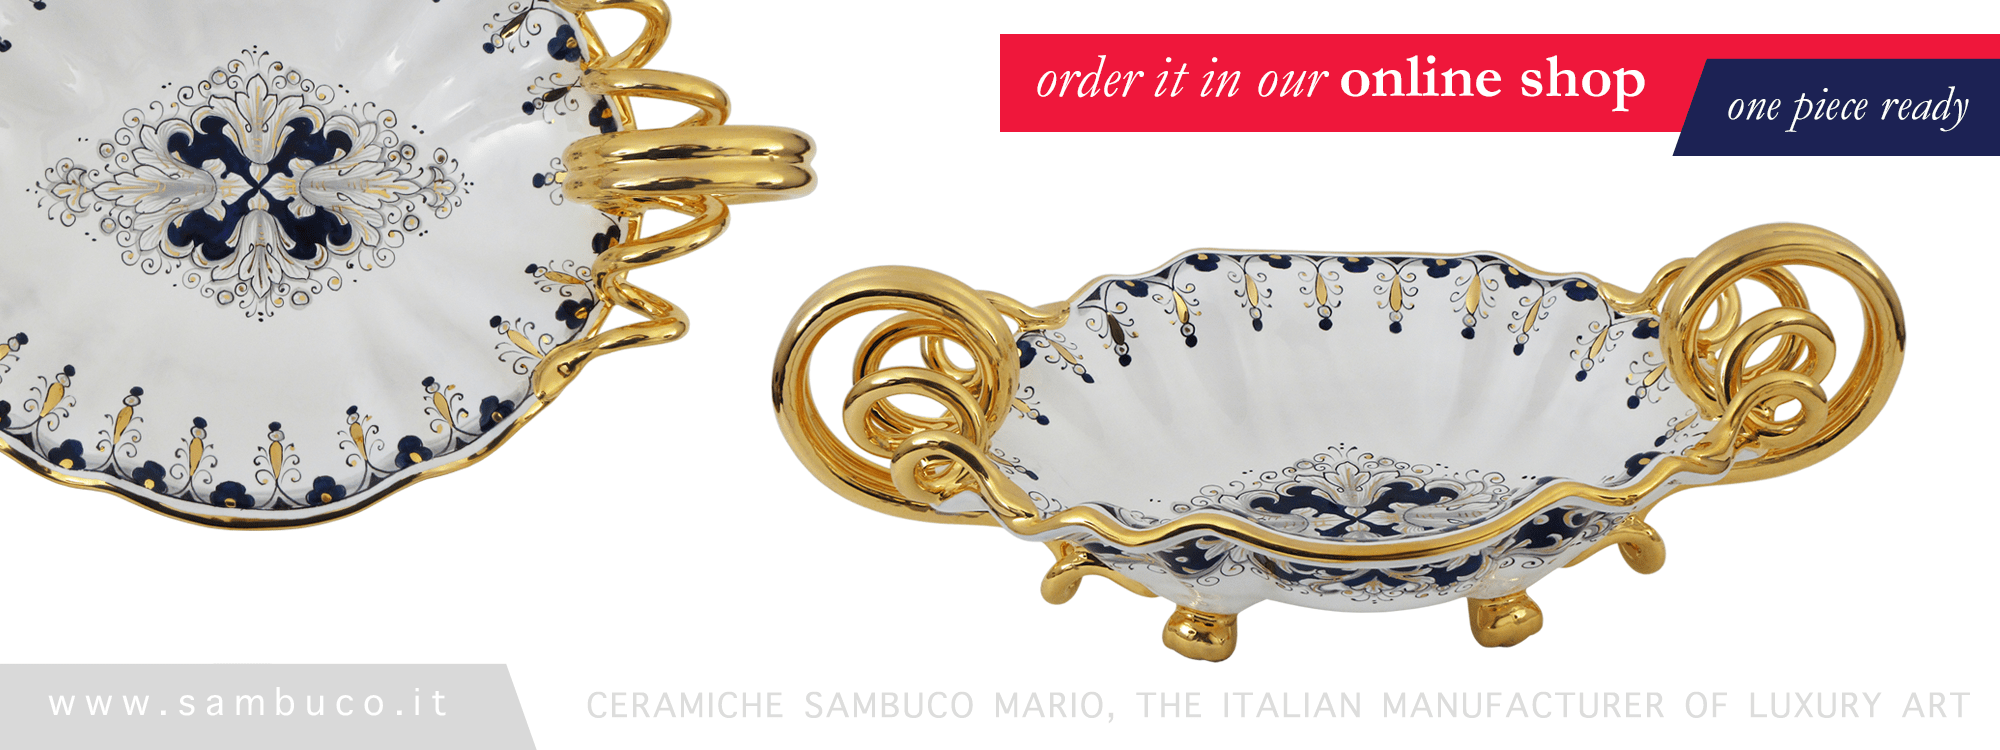 Sambuco and Luxury art.